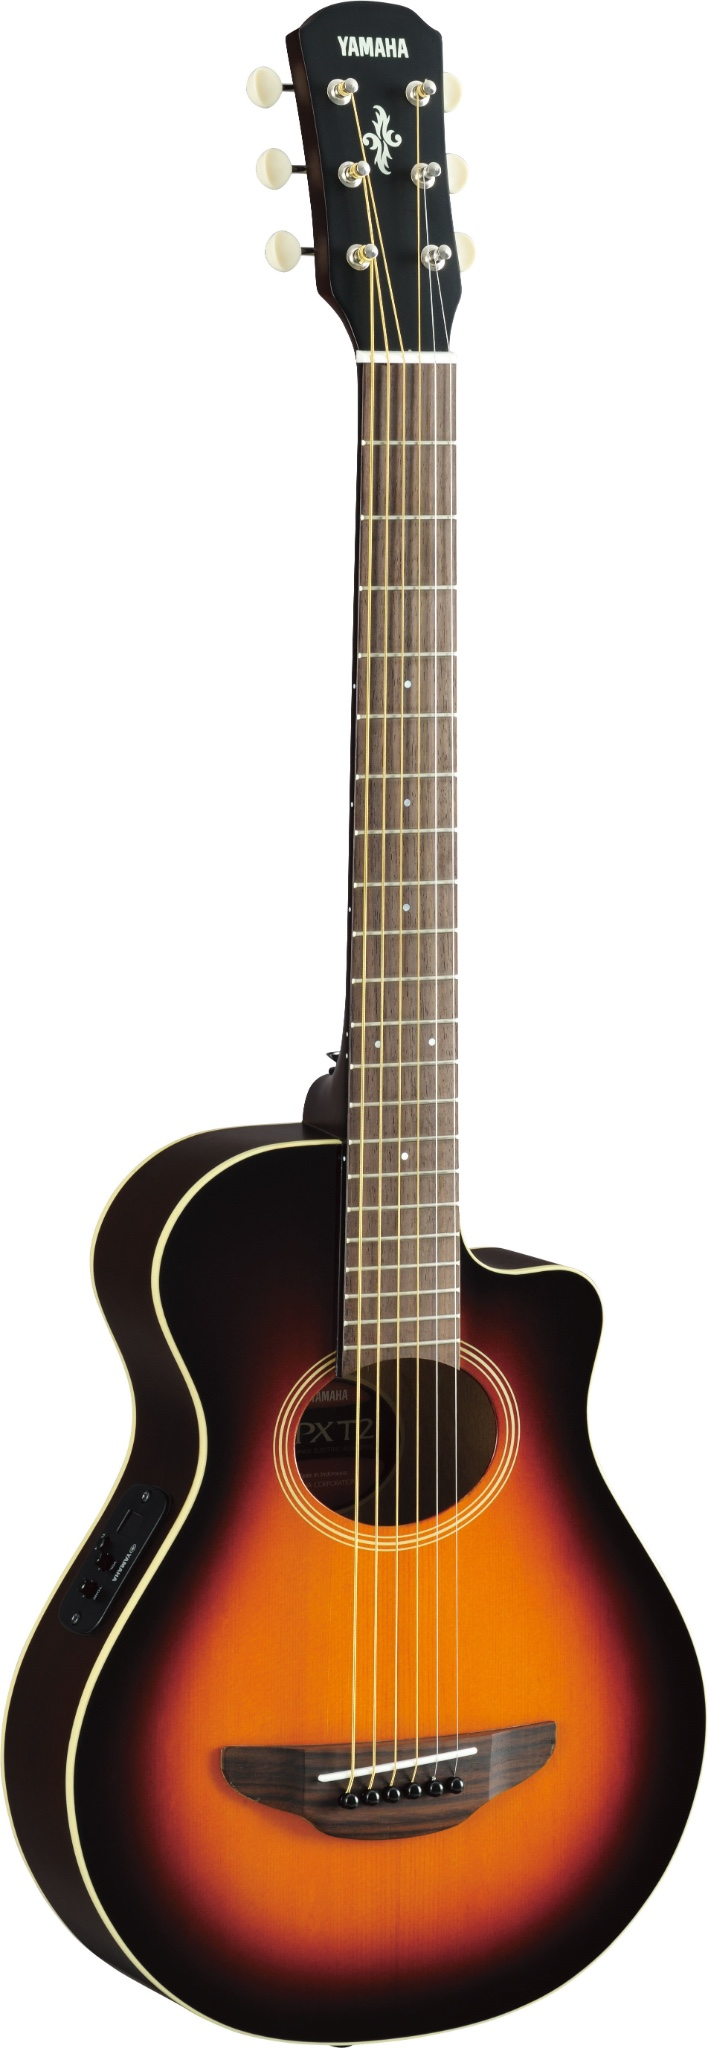 Yamaha APXT2 3/4  Acoustic Electric Guitar in  …